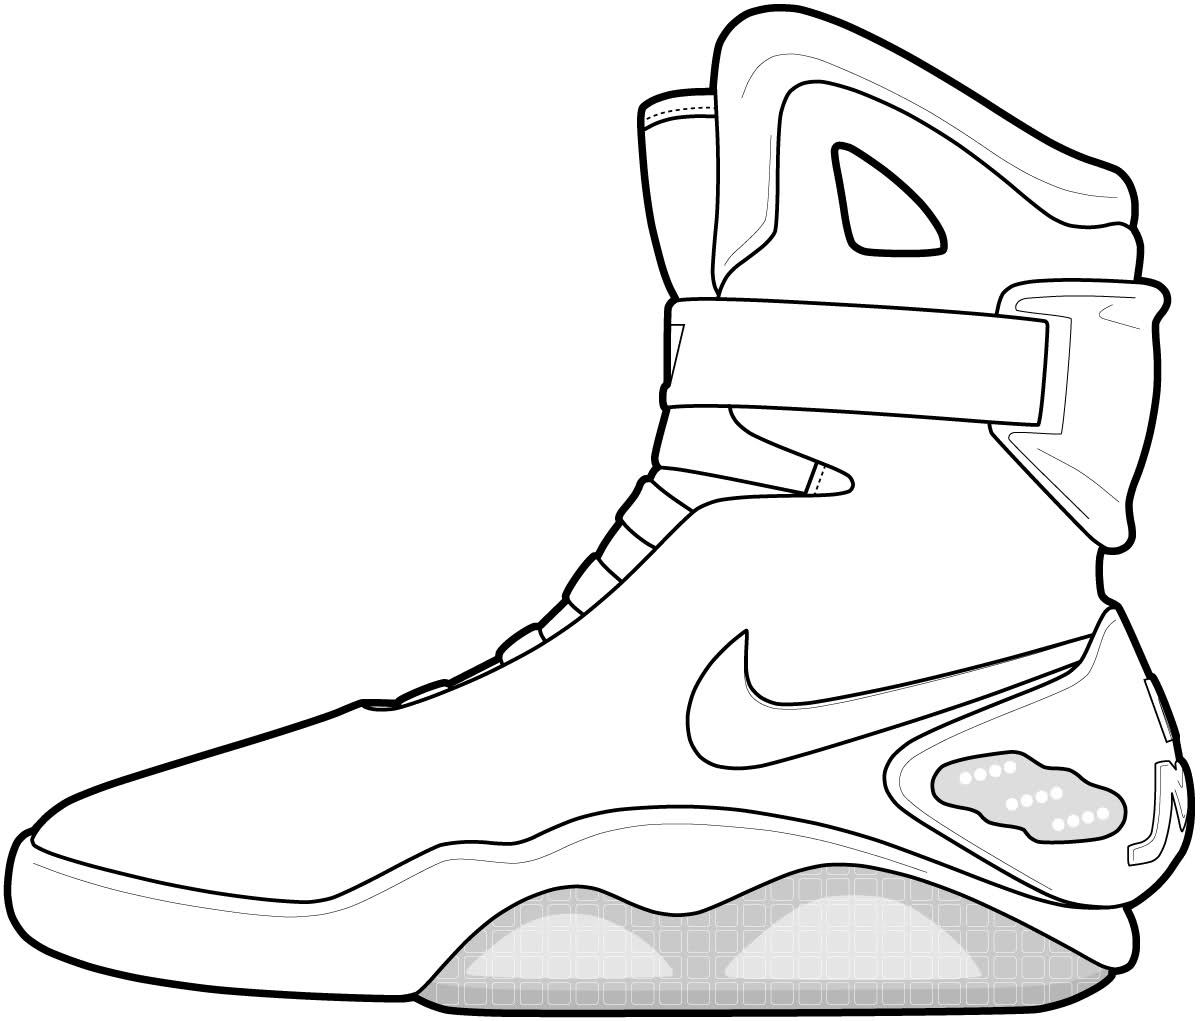 coloring pages of shoes vans shoes coloring pages at getcoloringscom free pages of coloring shoes